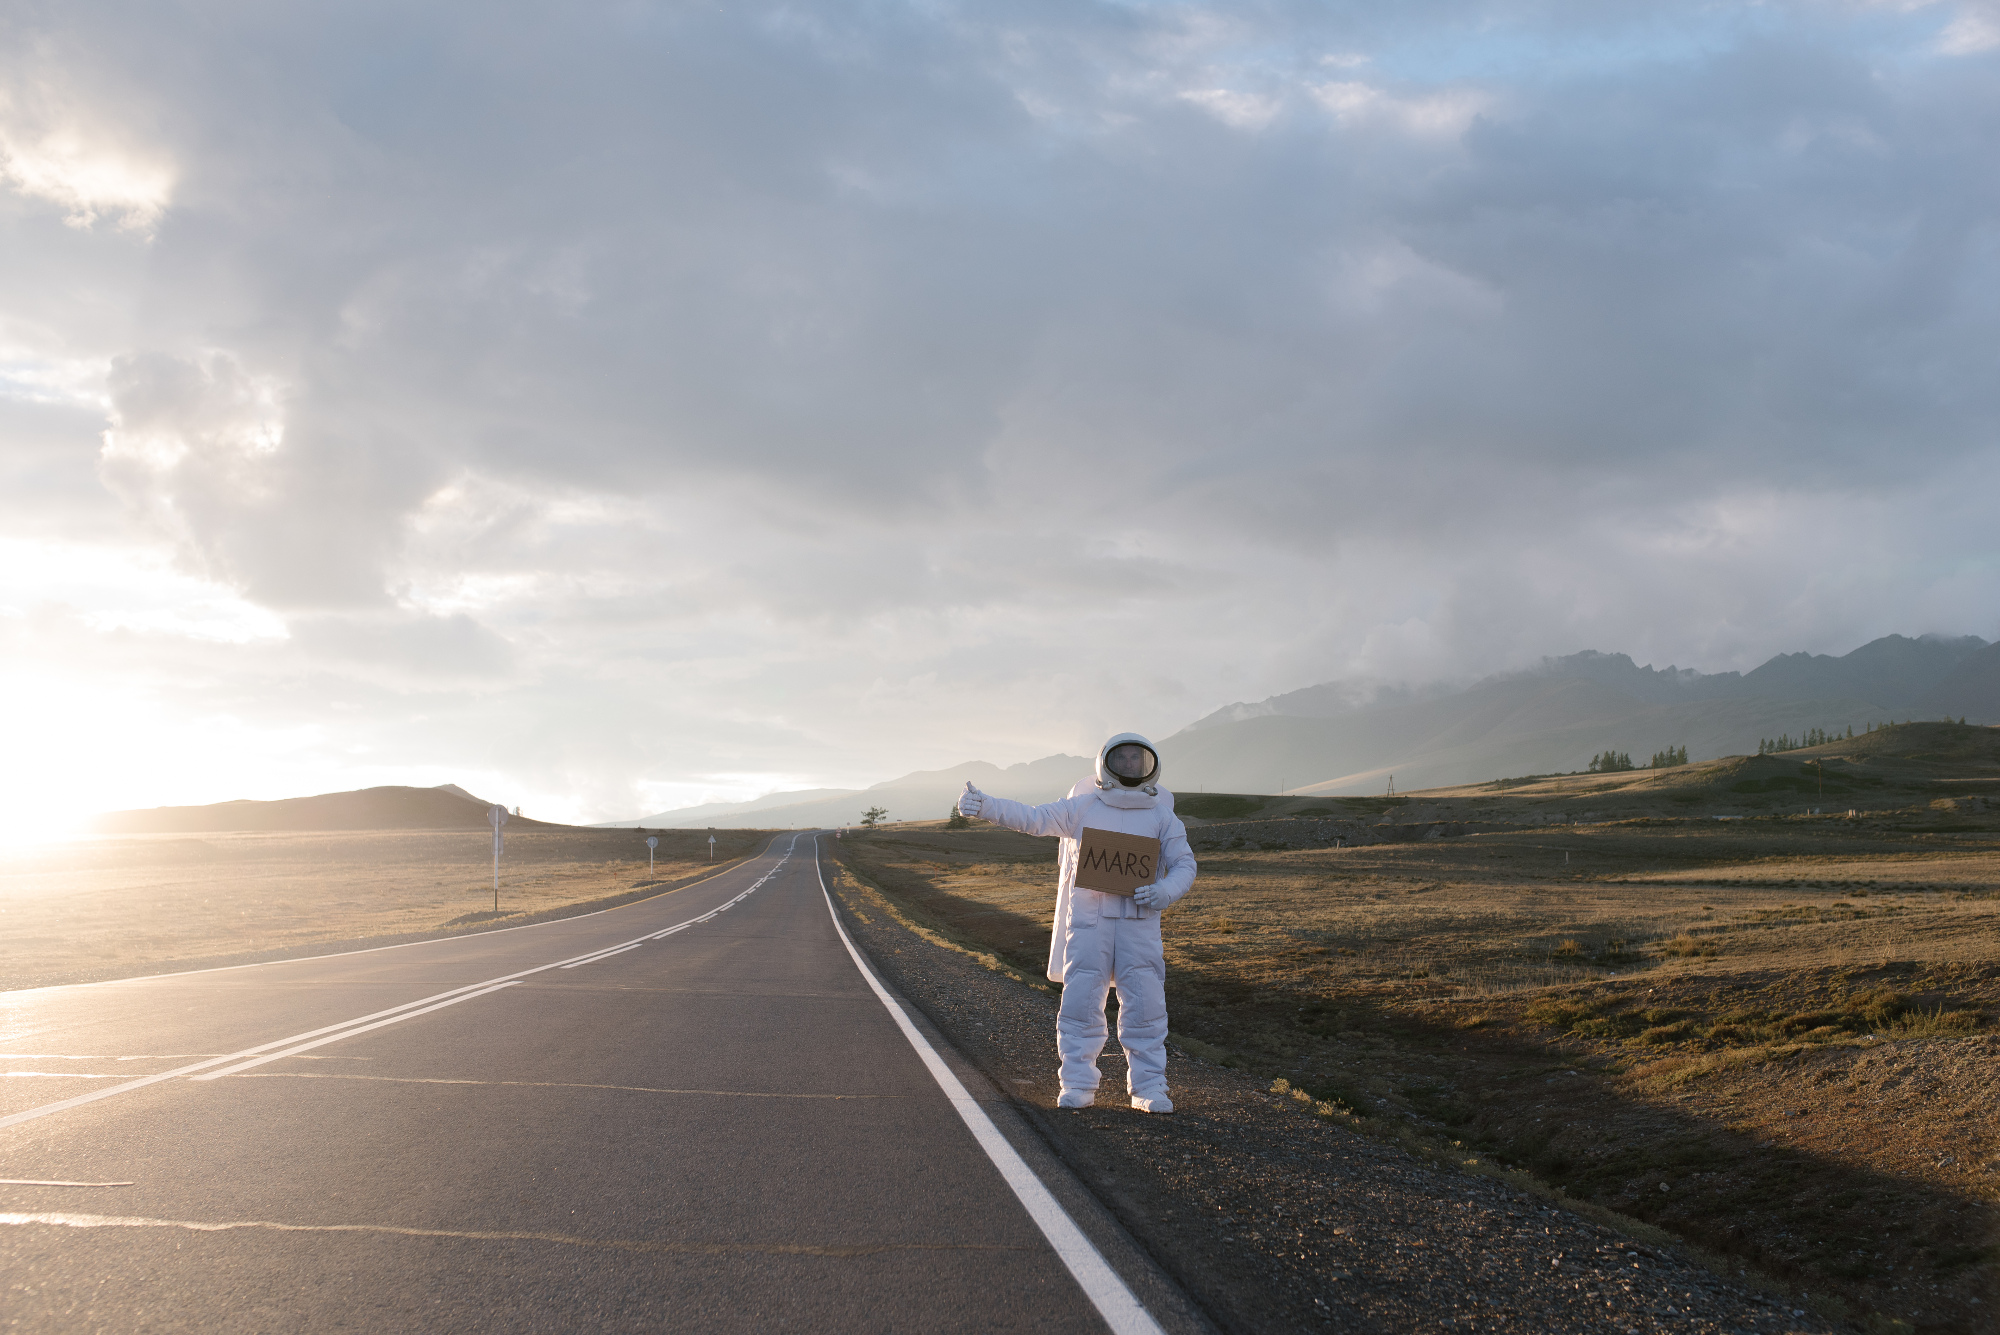 The 'lost astronaut' hitch-hiking